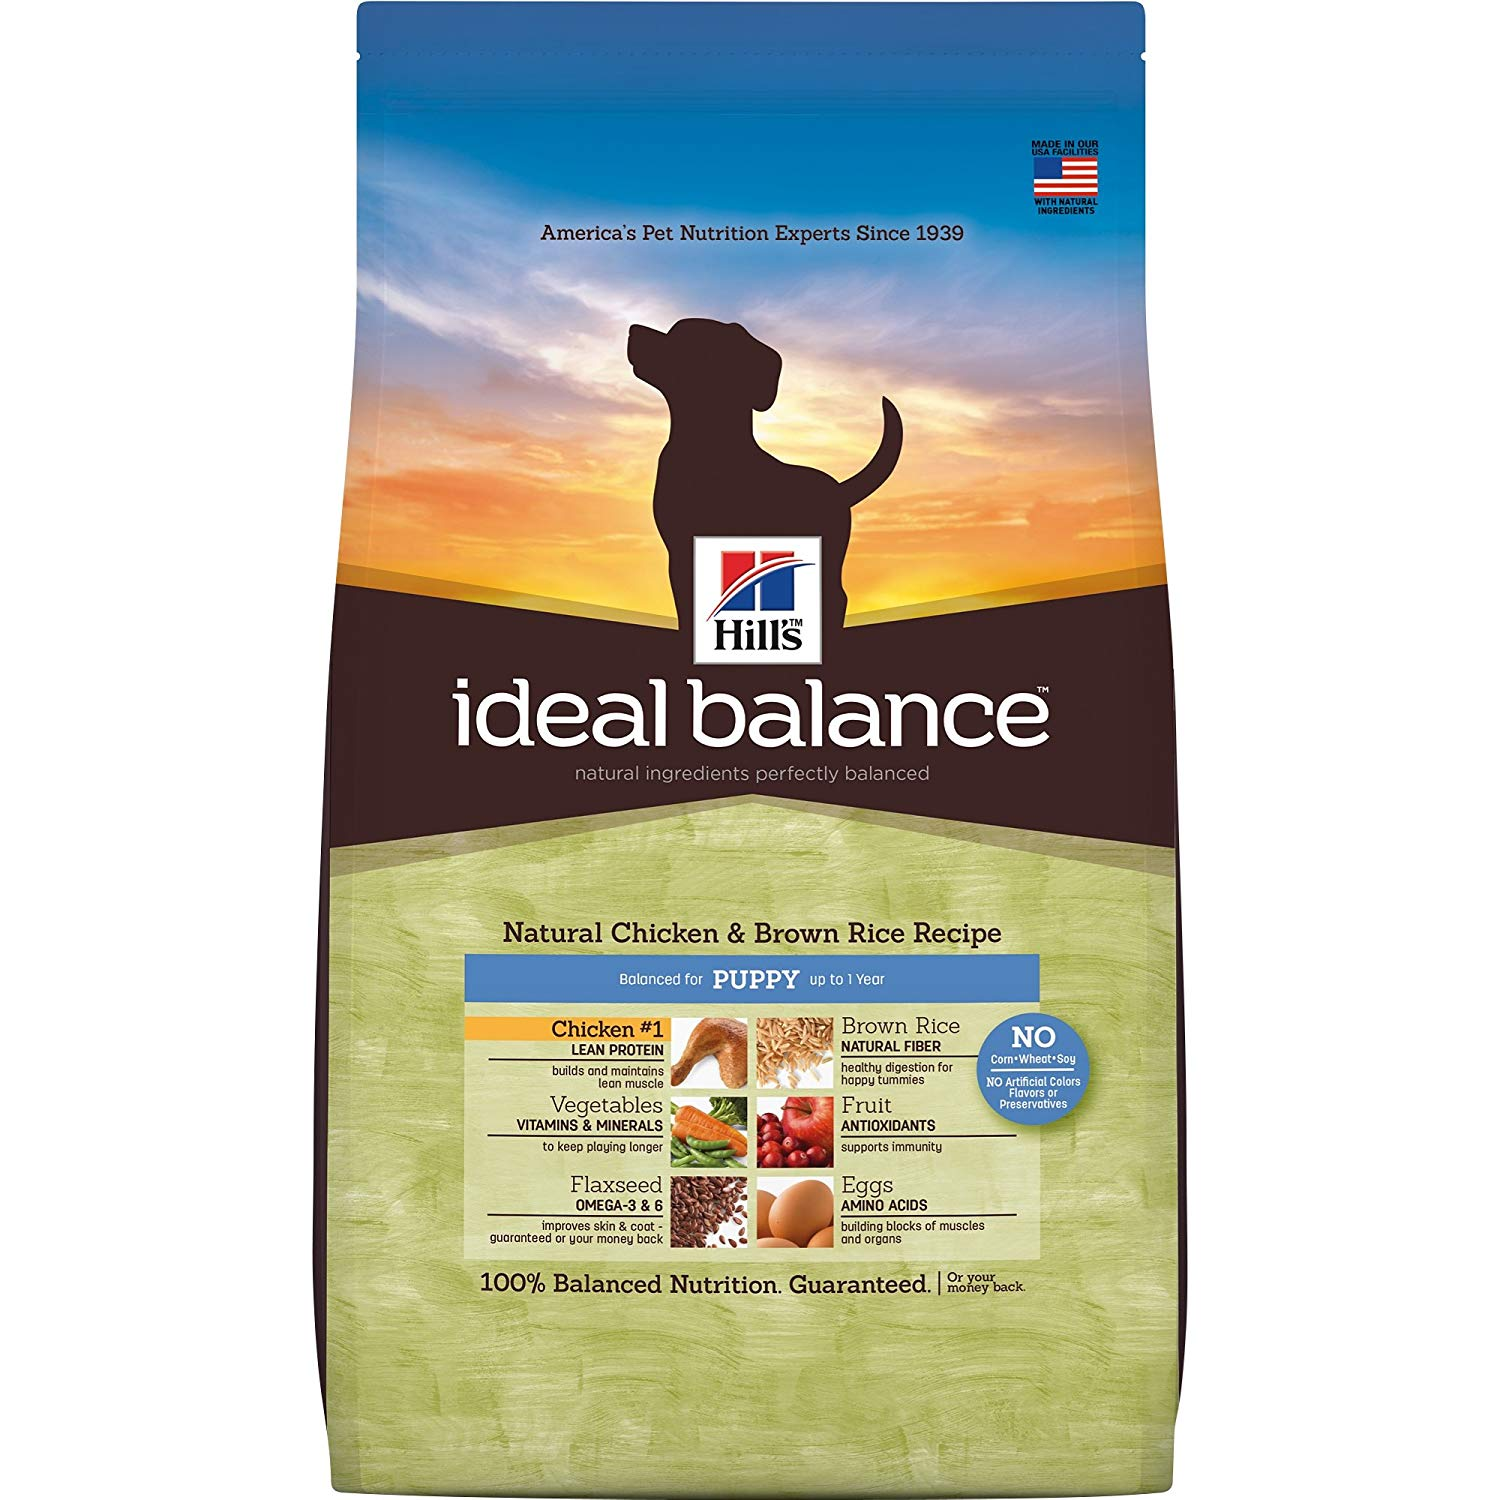 Hill's Ideal Balance Puppy Natural Chicken & Brown Rice Recipe Dry Dog Food